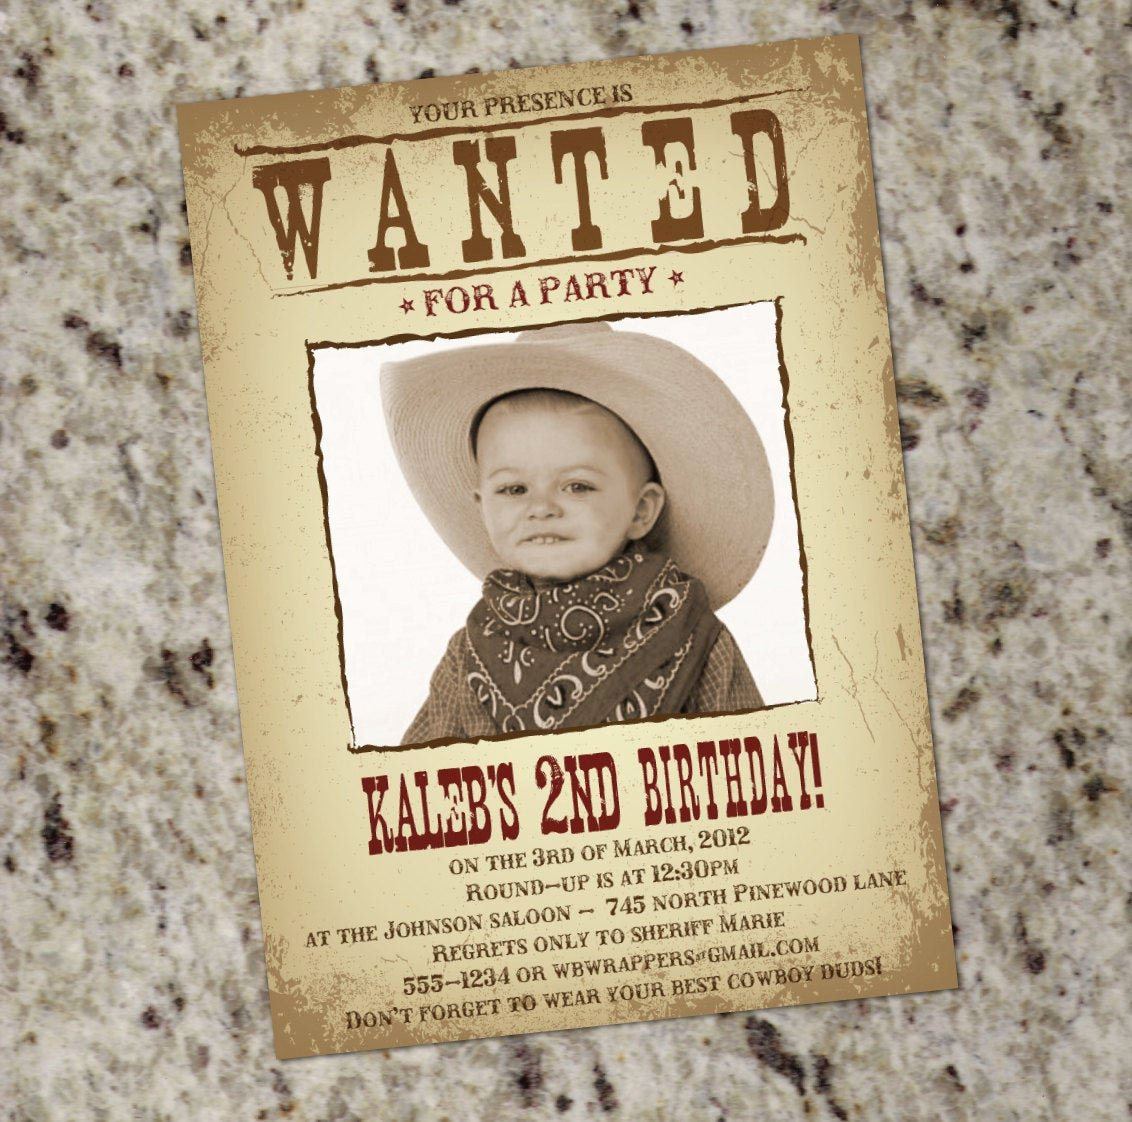 Free Western Invitation Templates Best Of Wanted Poster Western themed Party Invitation Printable